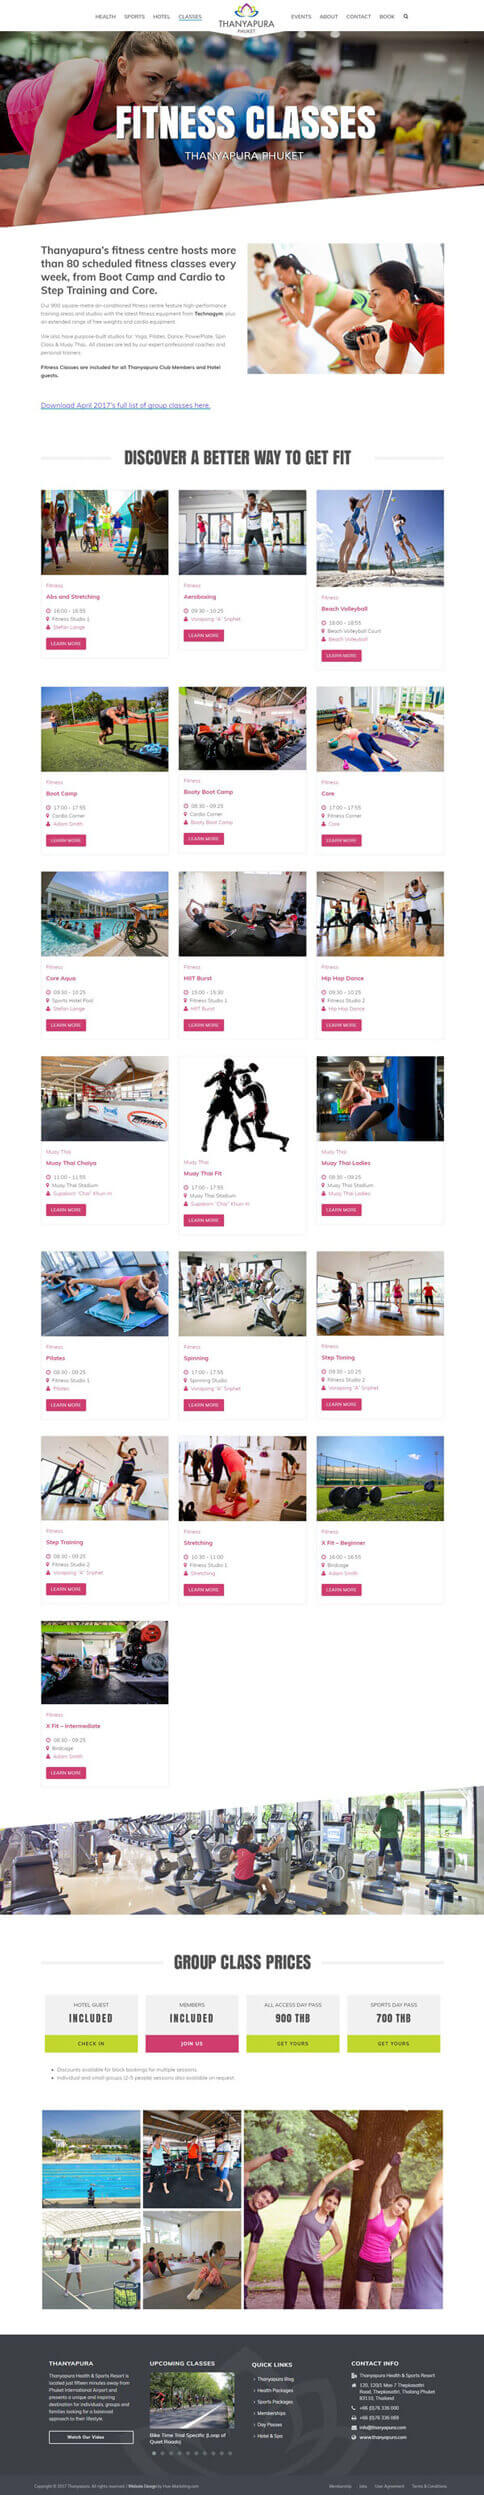 NEW Fitness Page - Thanyapura Phuket Website Redesign